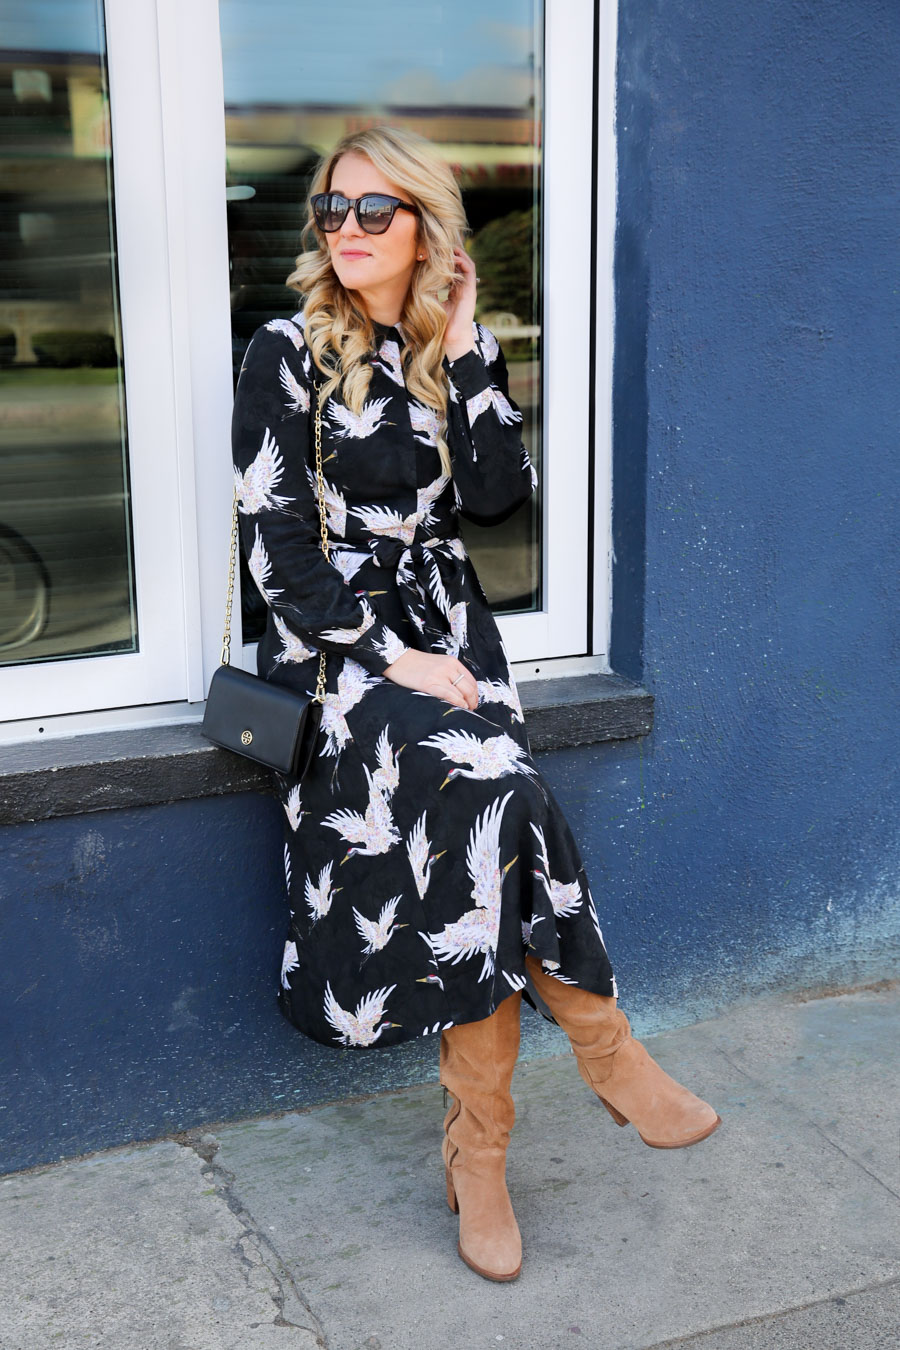 Layering Dresses For Cold Weather How To Wear Thermal Tights